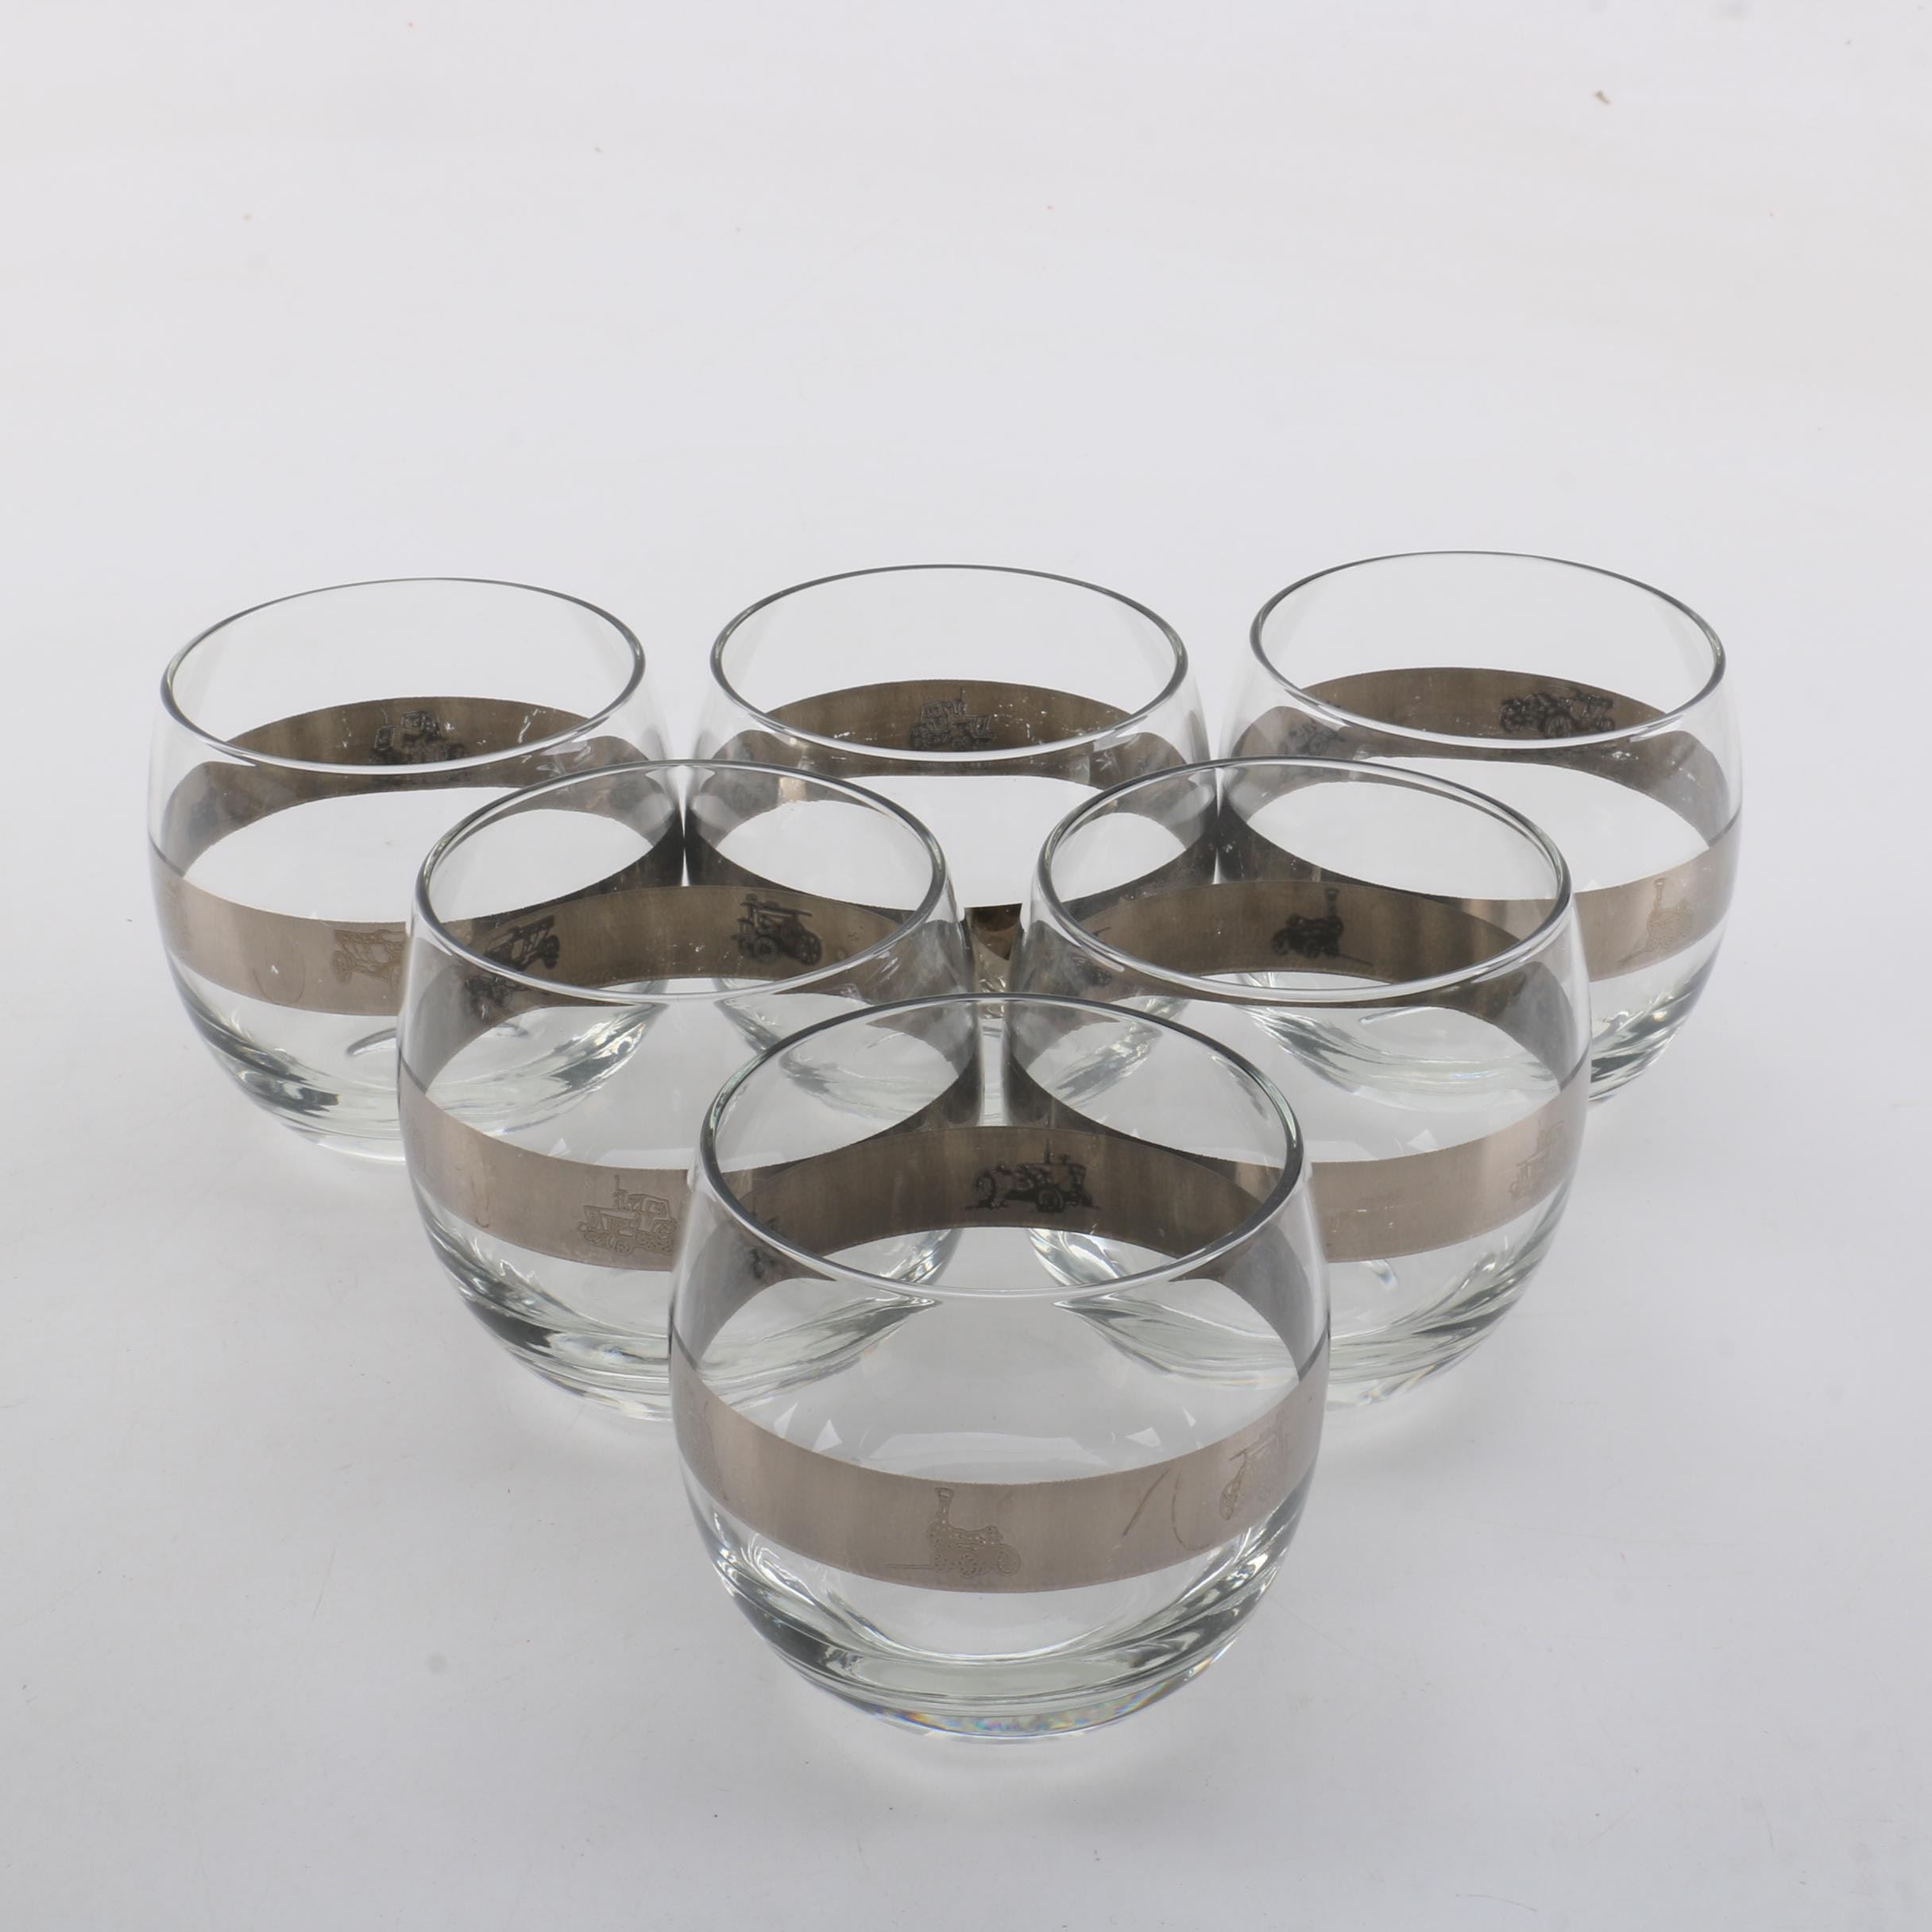 Locomotive Motif Silver Banded Roly Poly Glasses